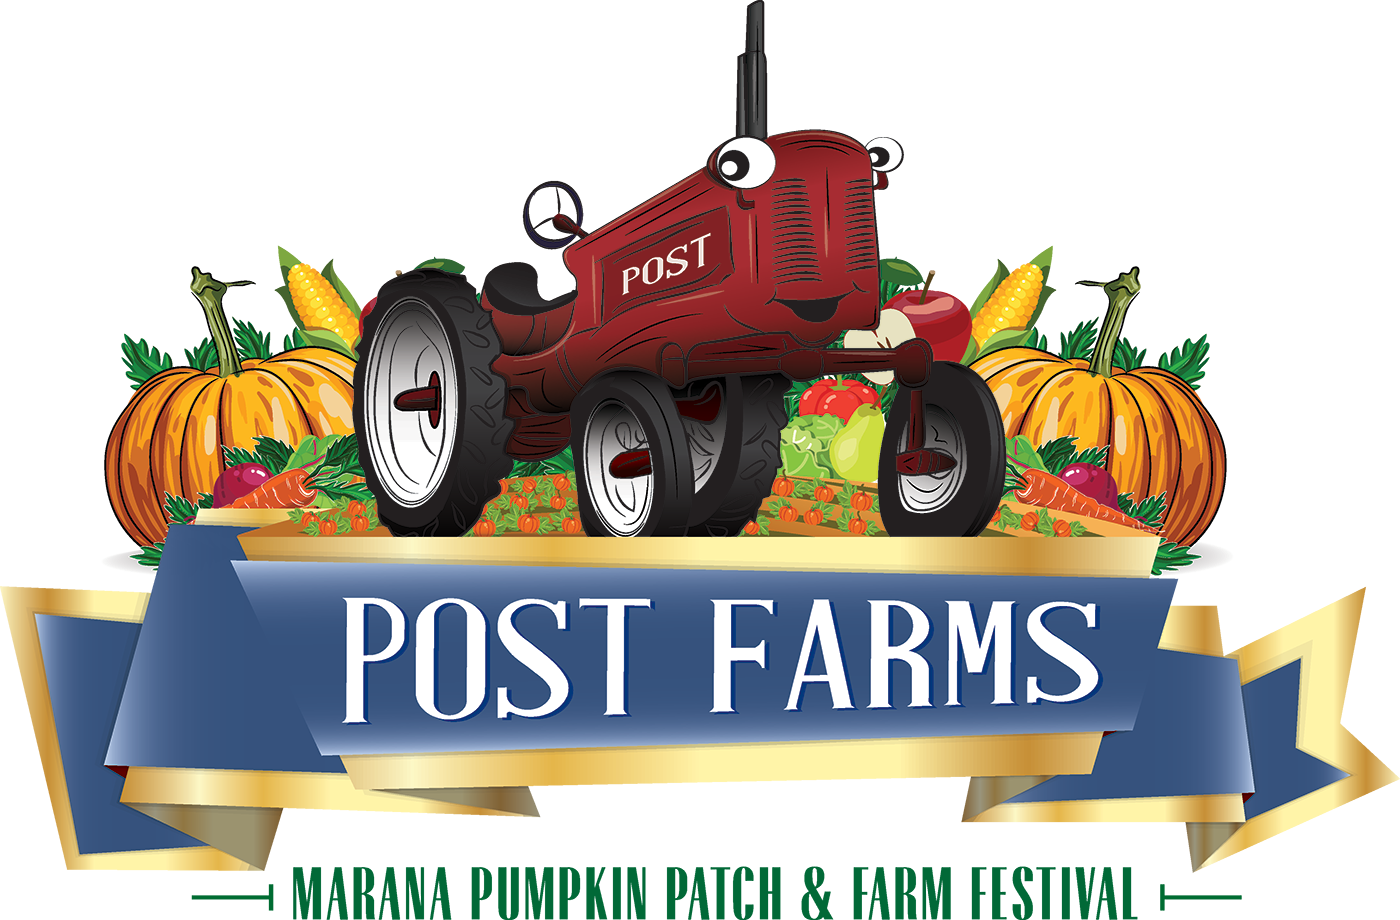 Pumpkin patch clipart png free stock Marana Pumpkin Patch - Sponsored by Post Farms free stock